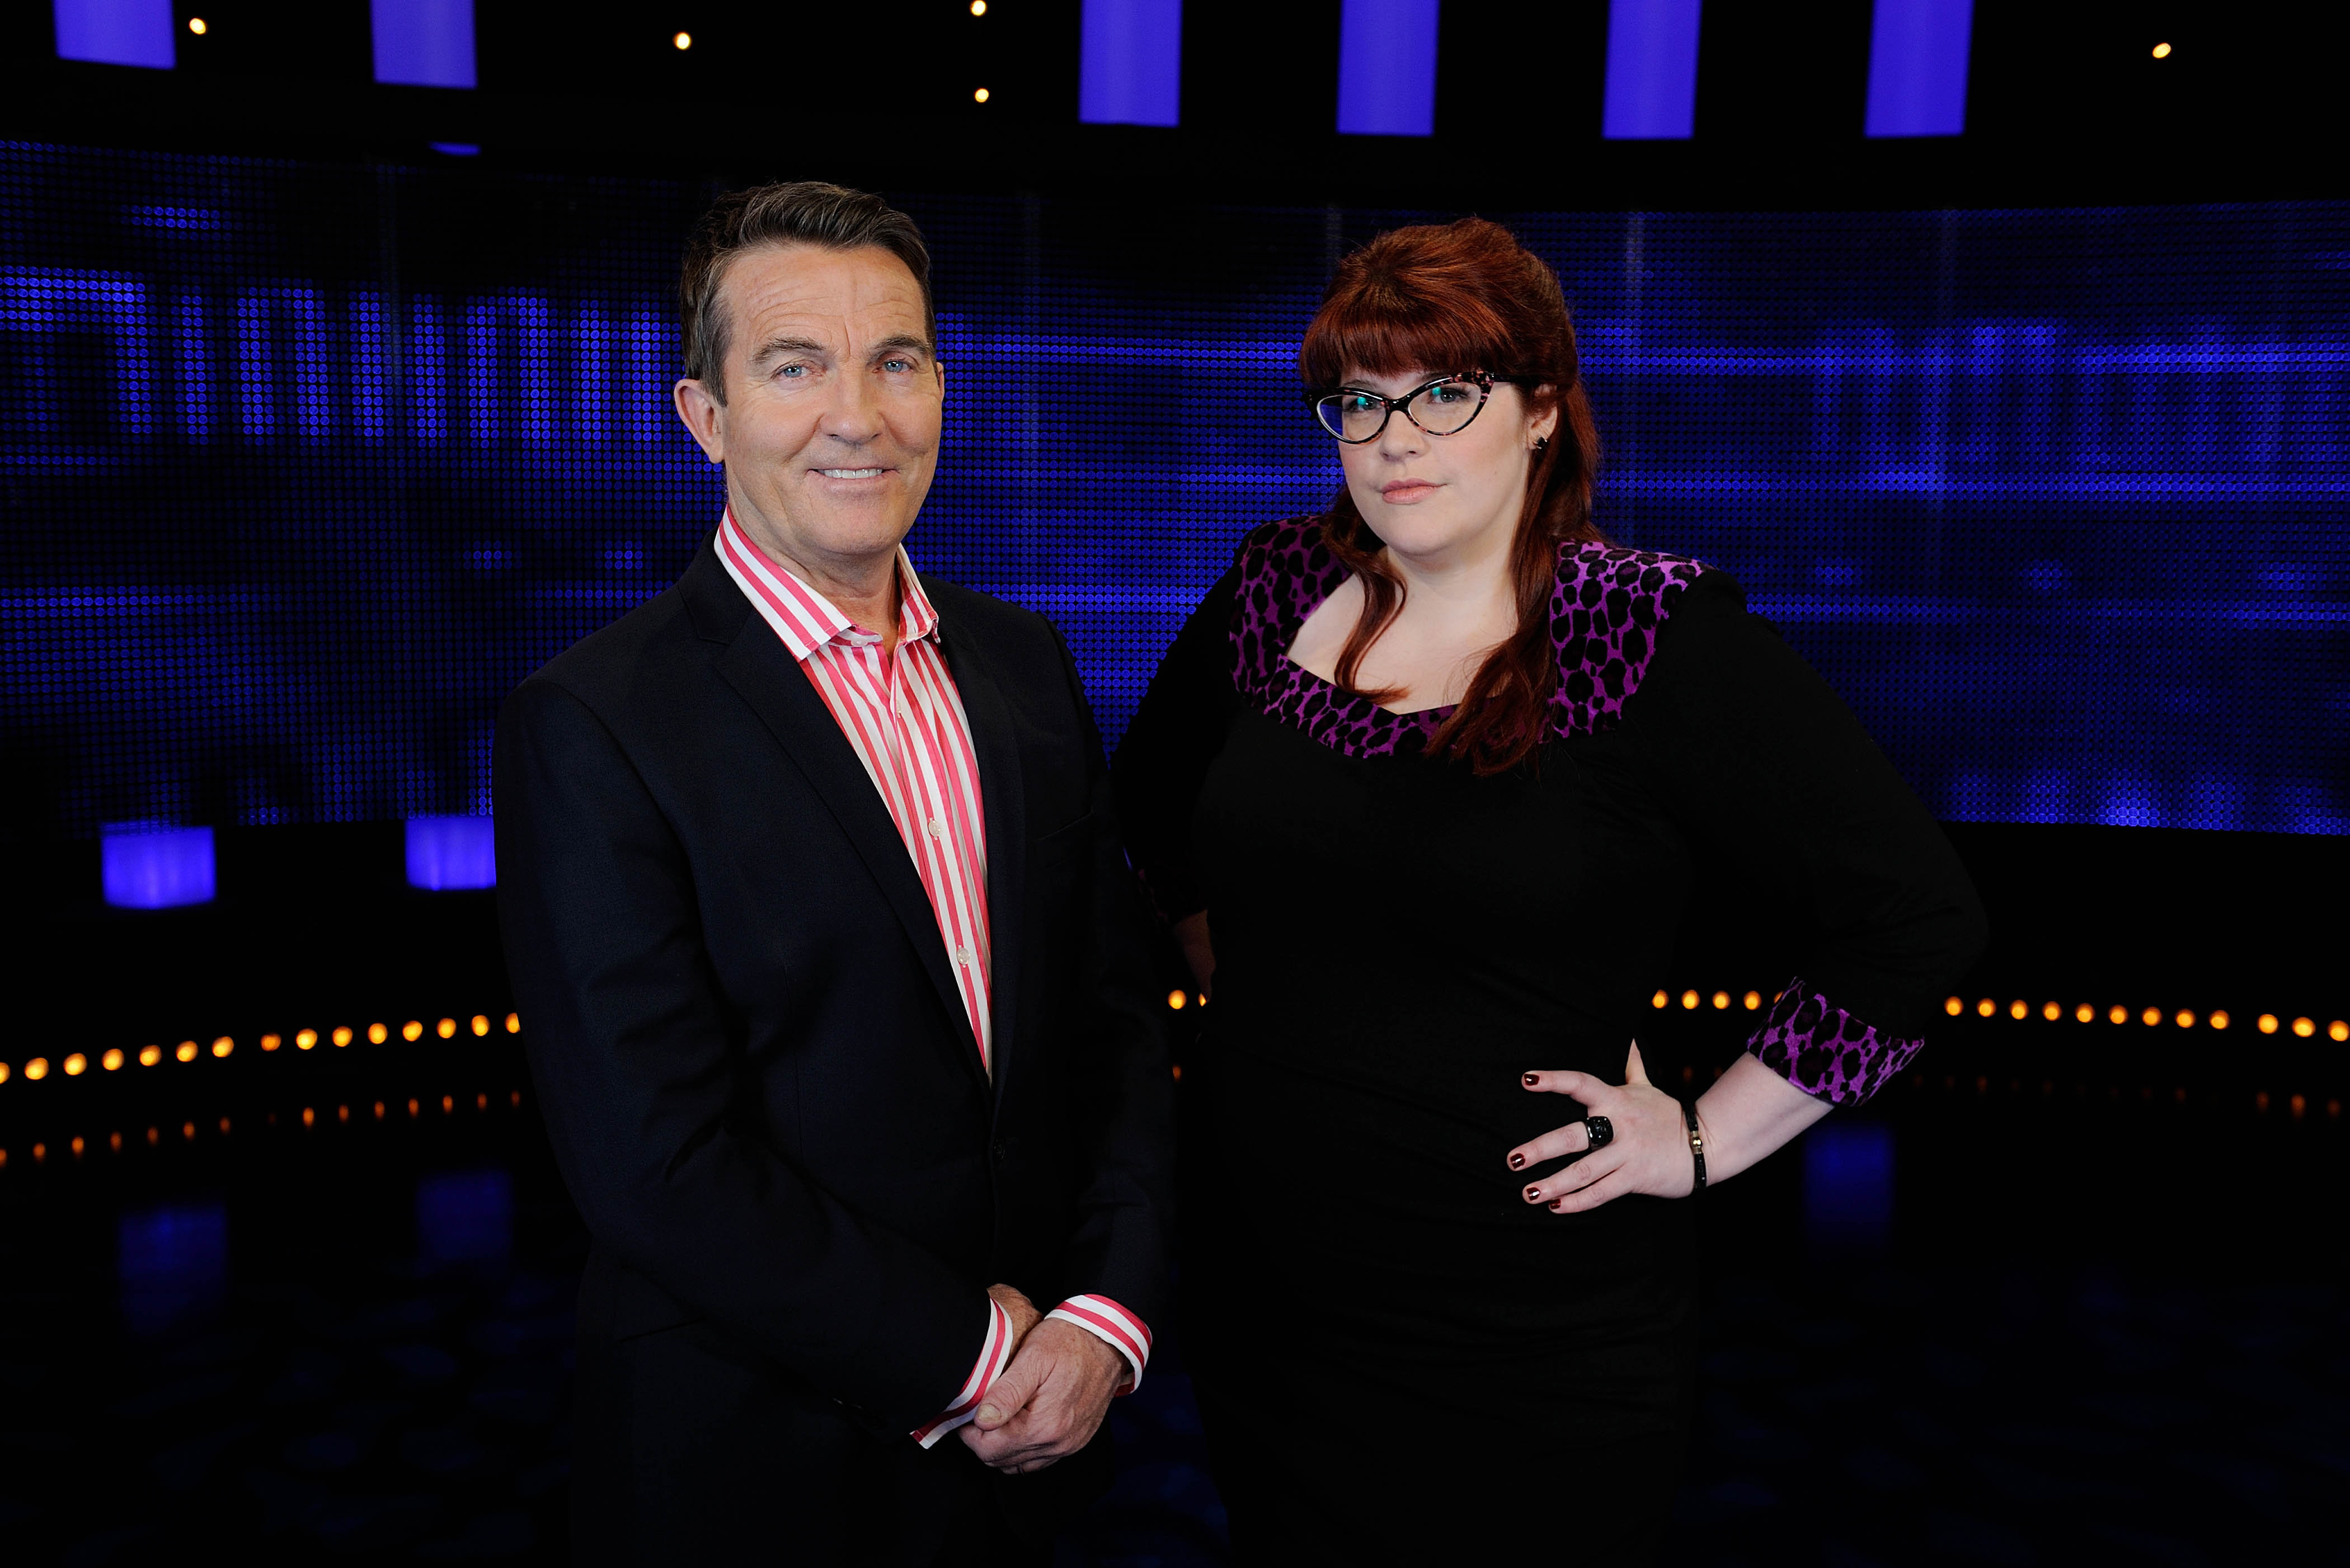 From ITV Studios THE CHASE Weekdays from 1st September 2015 on ITV Pictured: Host Bradley Walsh with new Chaser Jenny Ryan ITV DaytimeÕs The Chase, returns after a summer break with a brand new Chaser joining the ultra clever clan. The series - hosted by Bradley Walsh - will see Jenny ÔThe VixenÕ Ryan join Anne ÔThe GovernessÕ Hegerty, Shaun ÔThe Dark DestroyerÕ Wallace, Mark ÔThe BeastÕ Labbett and Paul ÔThe SinnermanÕ Sinha in the hit quiz show. Jenny brings the hot to The GovernessÕ cool and has also earned herself the name of The Bolton Brainiac by Bradley! The Chase isnÕt just a quizÉ itÕs a race, where the players must ensure they stay one step ahead of ÔThe ChaserÕ, a ruthless quiz genius determined to stop them winning at all costs. Stay ahead of ÔThe ChaserÕ and the team of contestants build a cash sum and share the pot. Get caught and they lose the lot. Jenny said: ÒI'm thrilled to be joining the formidable line-up on The Chase! It's a dream job for any quizzer, and I can't wait to see what the contestants make of me - especially when I catch them!Ó Jenny will first appear on the show on Wednesday 2nd September at 5pm on ITV. The Chase series 9 continues after a summer break on Monday 31st August and airs weekdays at 5pm on ITV. © ITV For further information please contact Peter Gray 0207 157 3046 peter.gray@itv.com This photograph is © ITV and can only be reproduced for editorial purposes directly in connection with the programme THE CHASE or ITV. Once made available by the ITV Picture Desk, this photograph can be reproduced once only up until the Transmission date and no reproduction fee will be charged. Any subsequent usage may incur a fee. This photograph must not be syndicated to any other publication or website, or permanently archived, without the express written permission of ITV Picture Desk. Full Terms and conditions are available on the website www.itvpictures.com